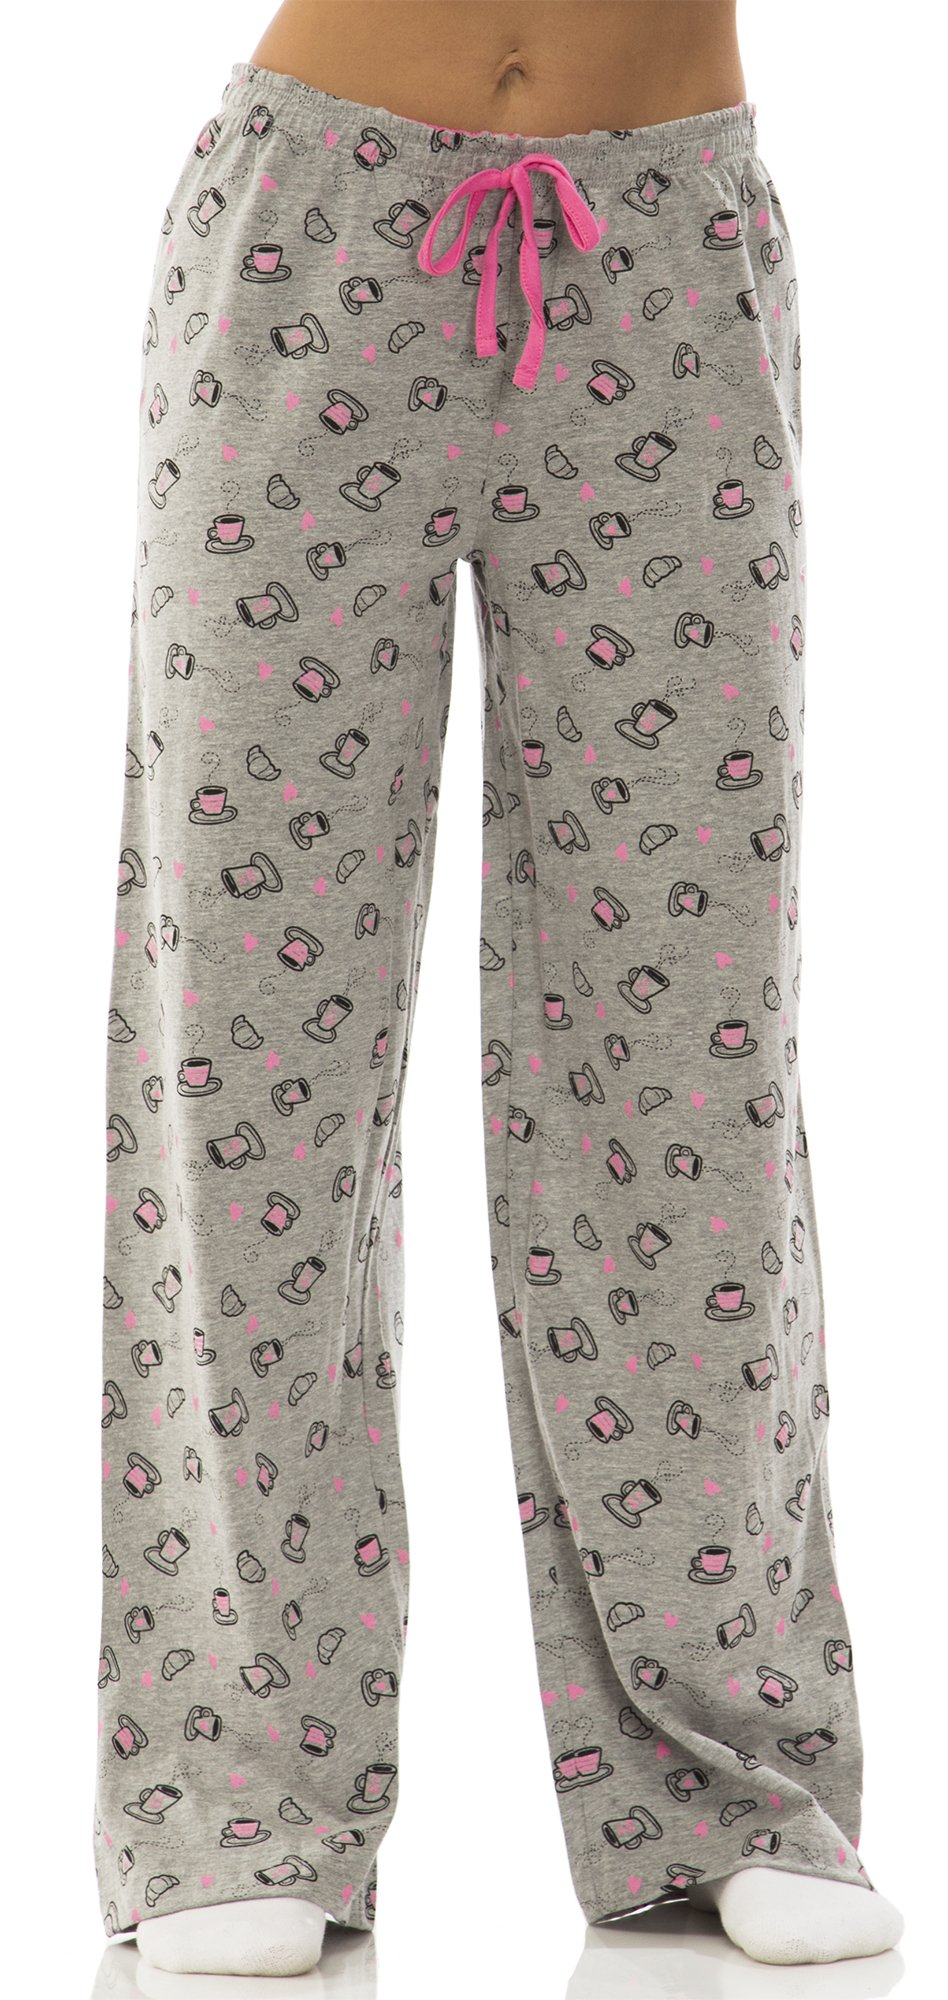 Dollhouse Womens Cotton Jersey Drawstring Pajama Bottoms Size: in Coffee Mugs, Grey, S